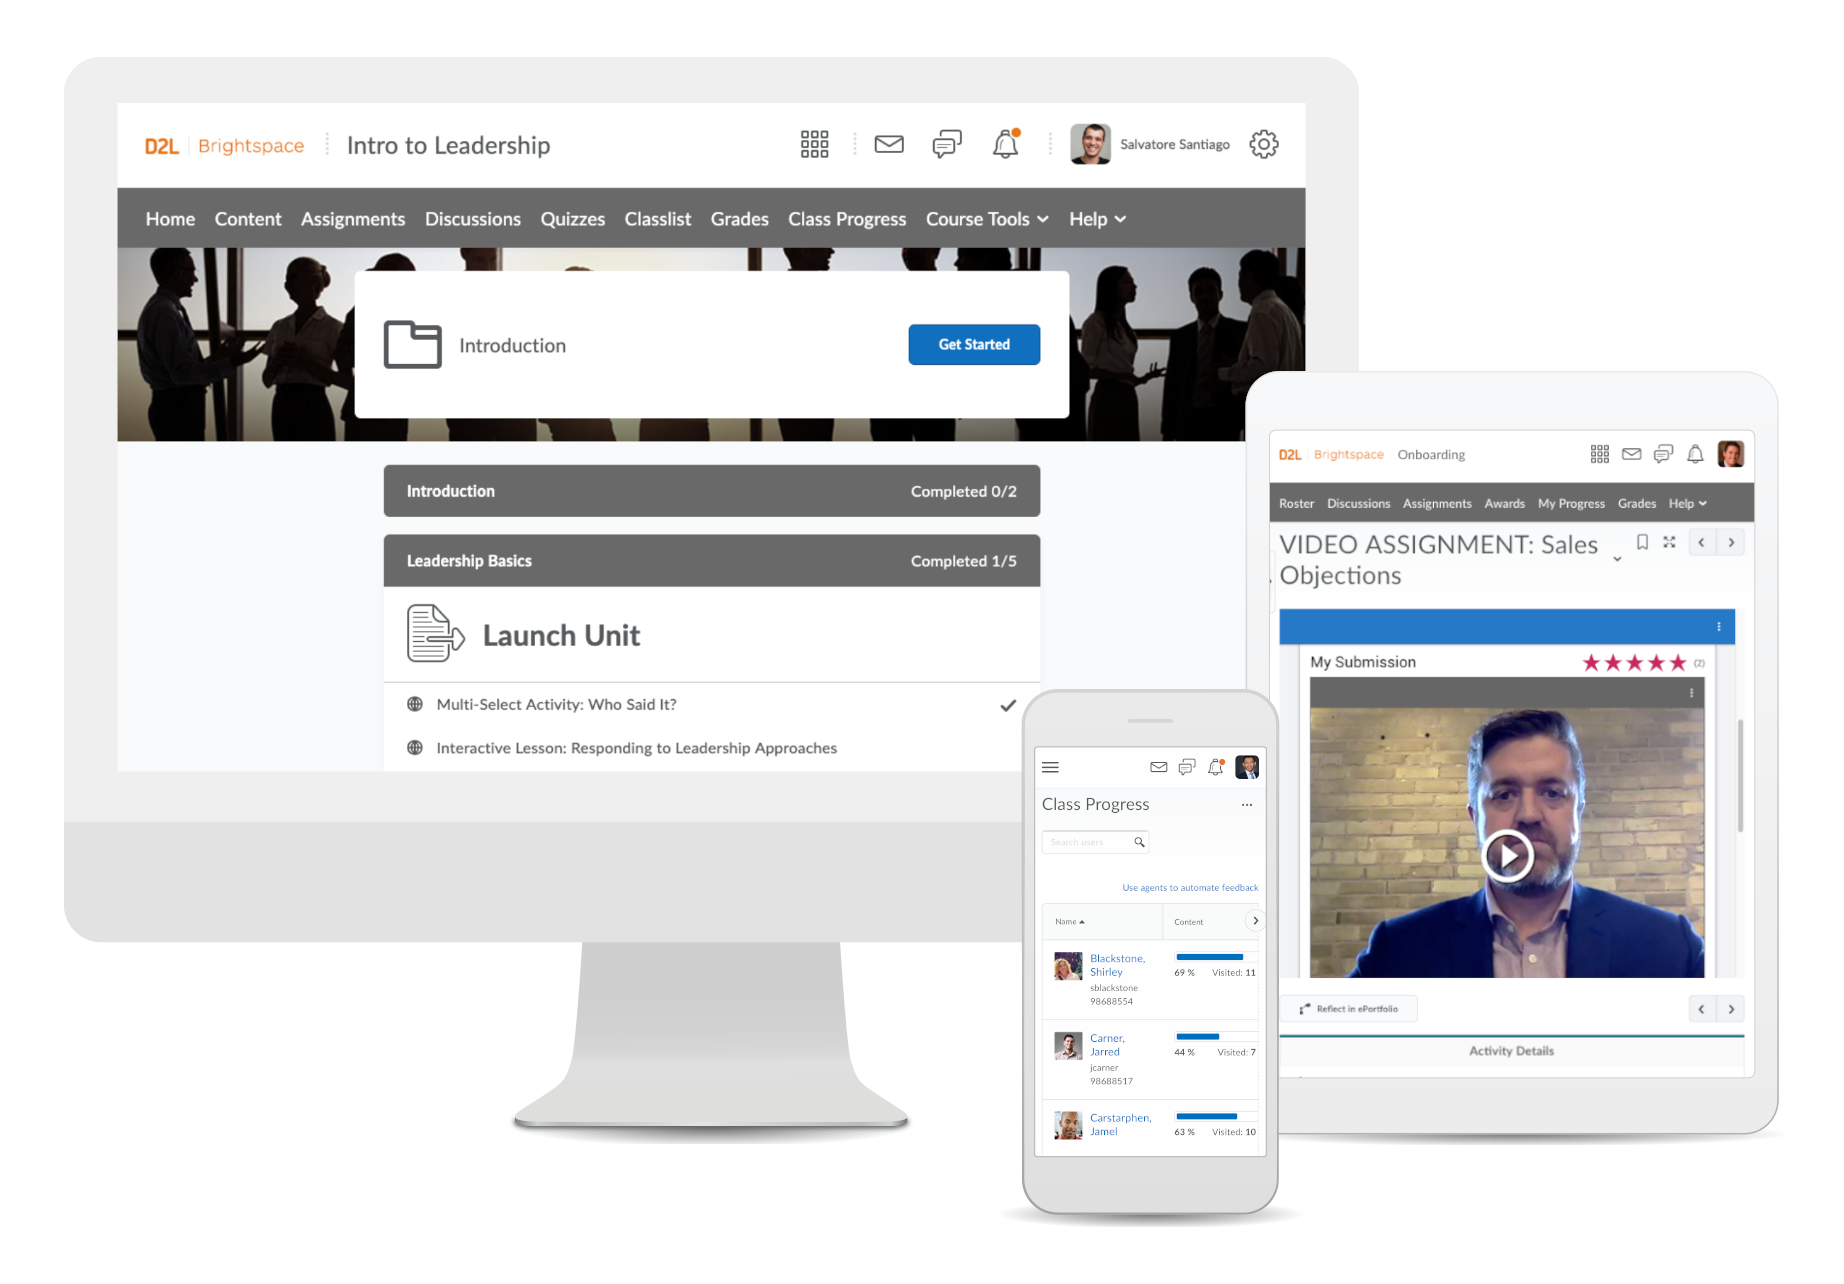 Brightspace Software - Brightspace learning platform for corporate